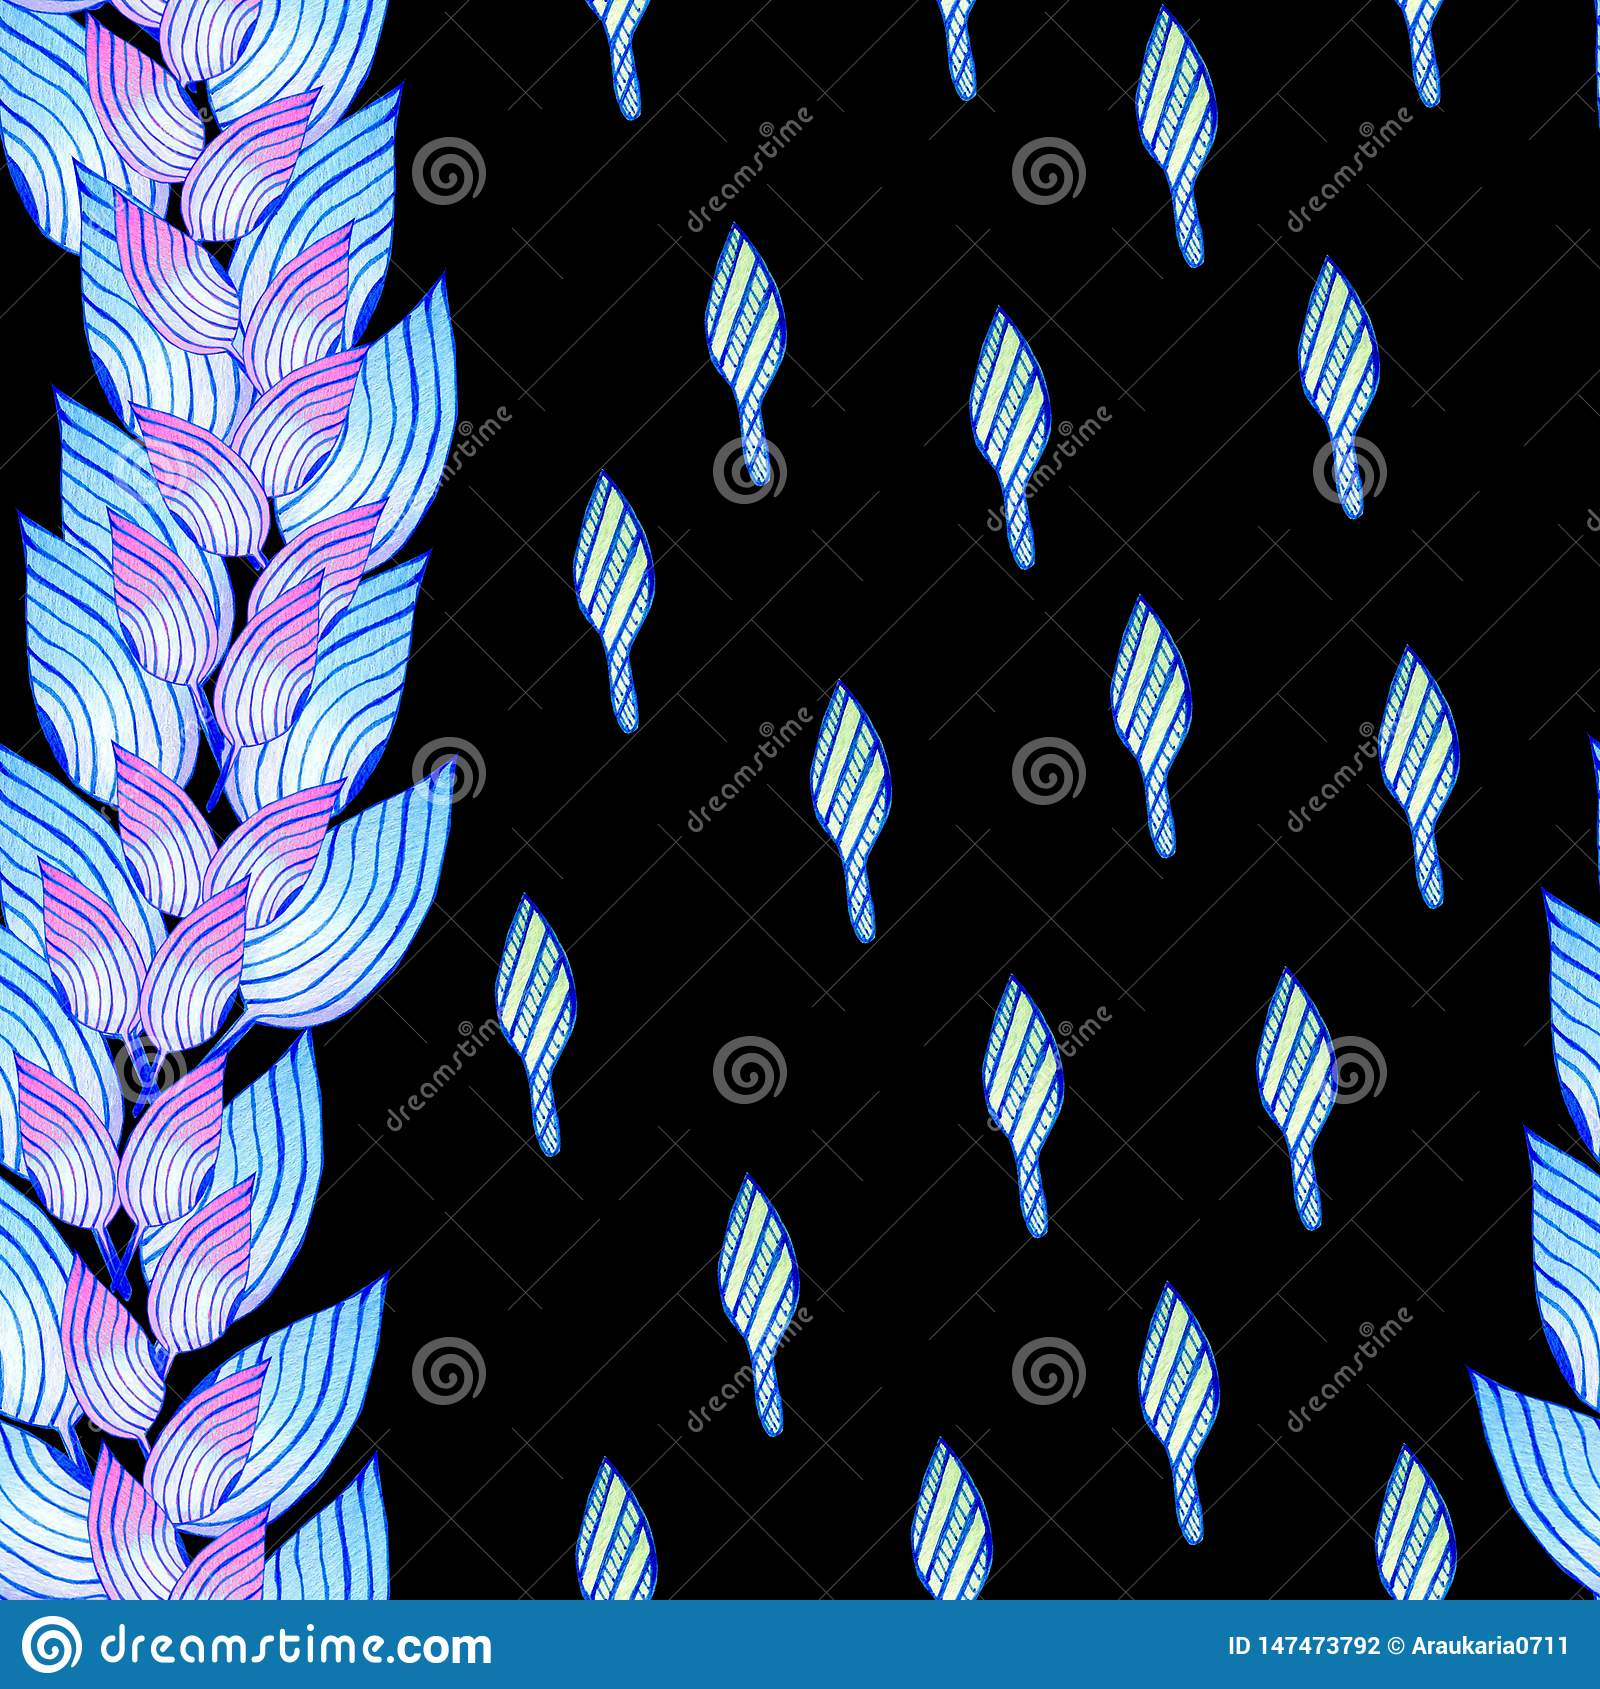 Seamless pattern with blue leaves in african style.